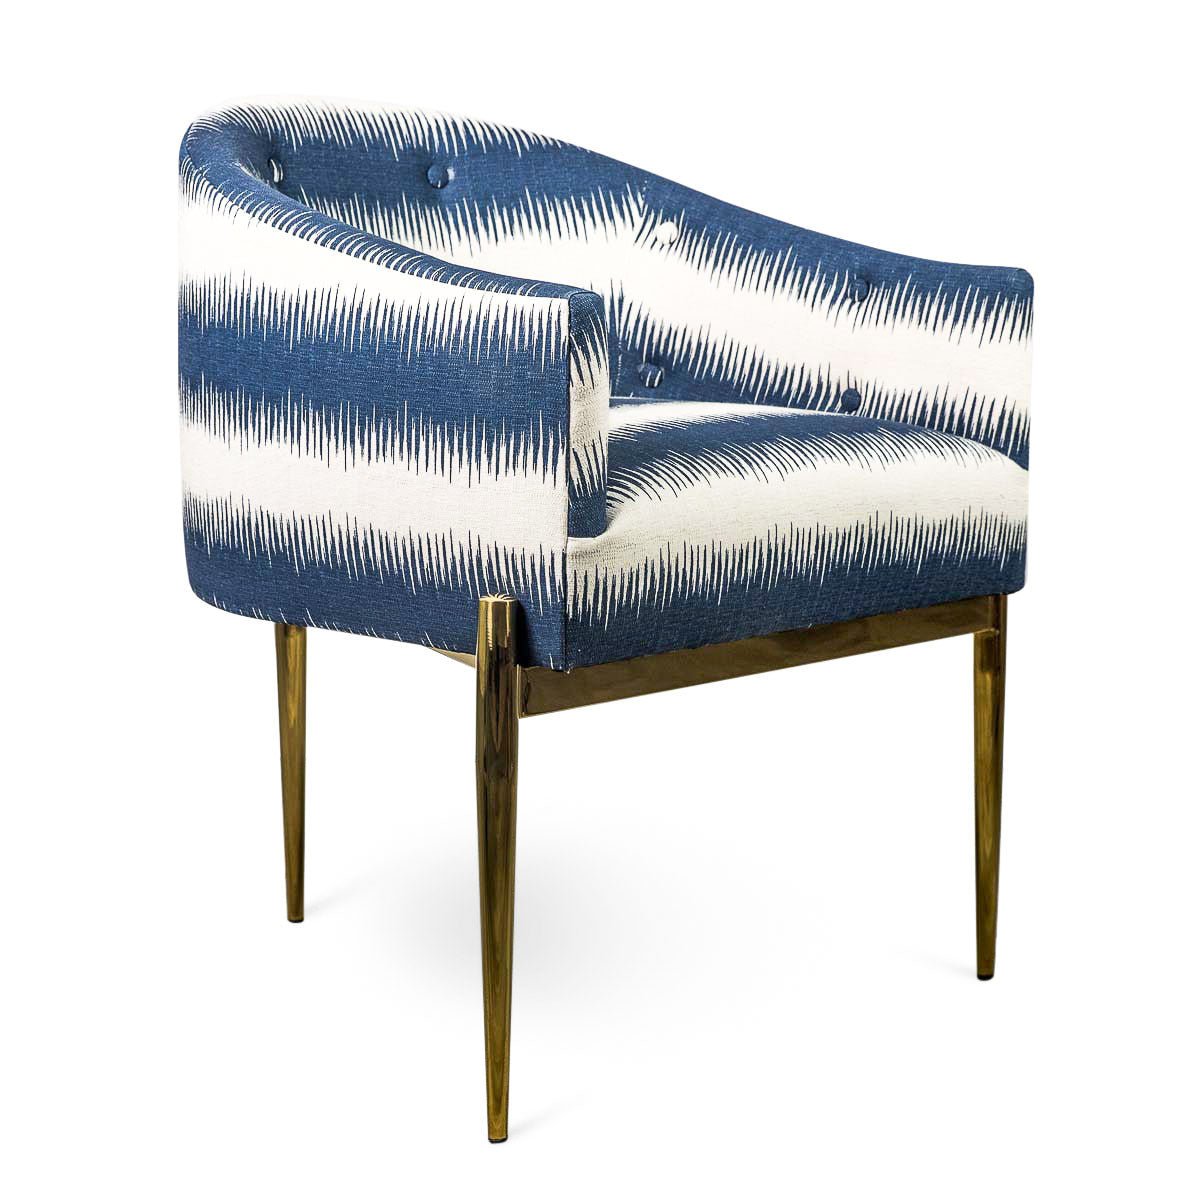 Art Deco Dining Chair in Stripe Ikat - ModShop1.com